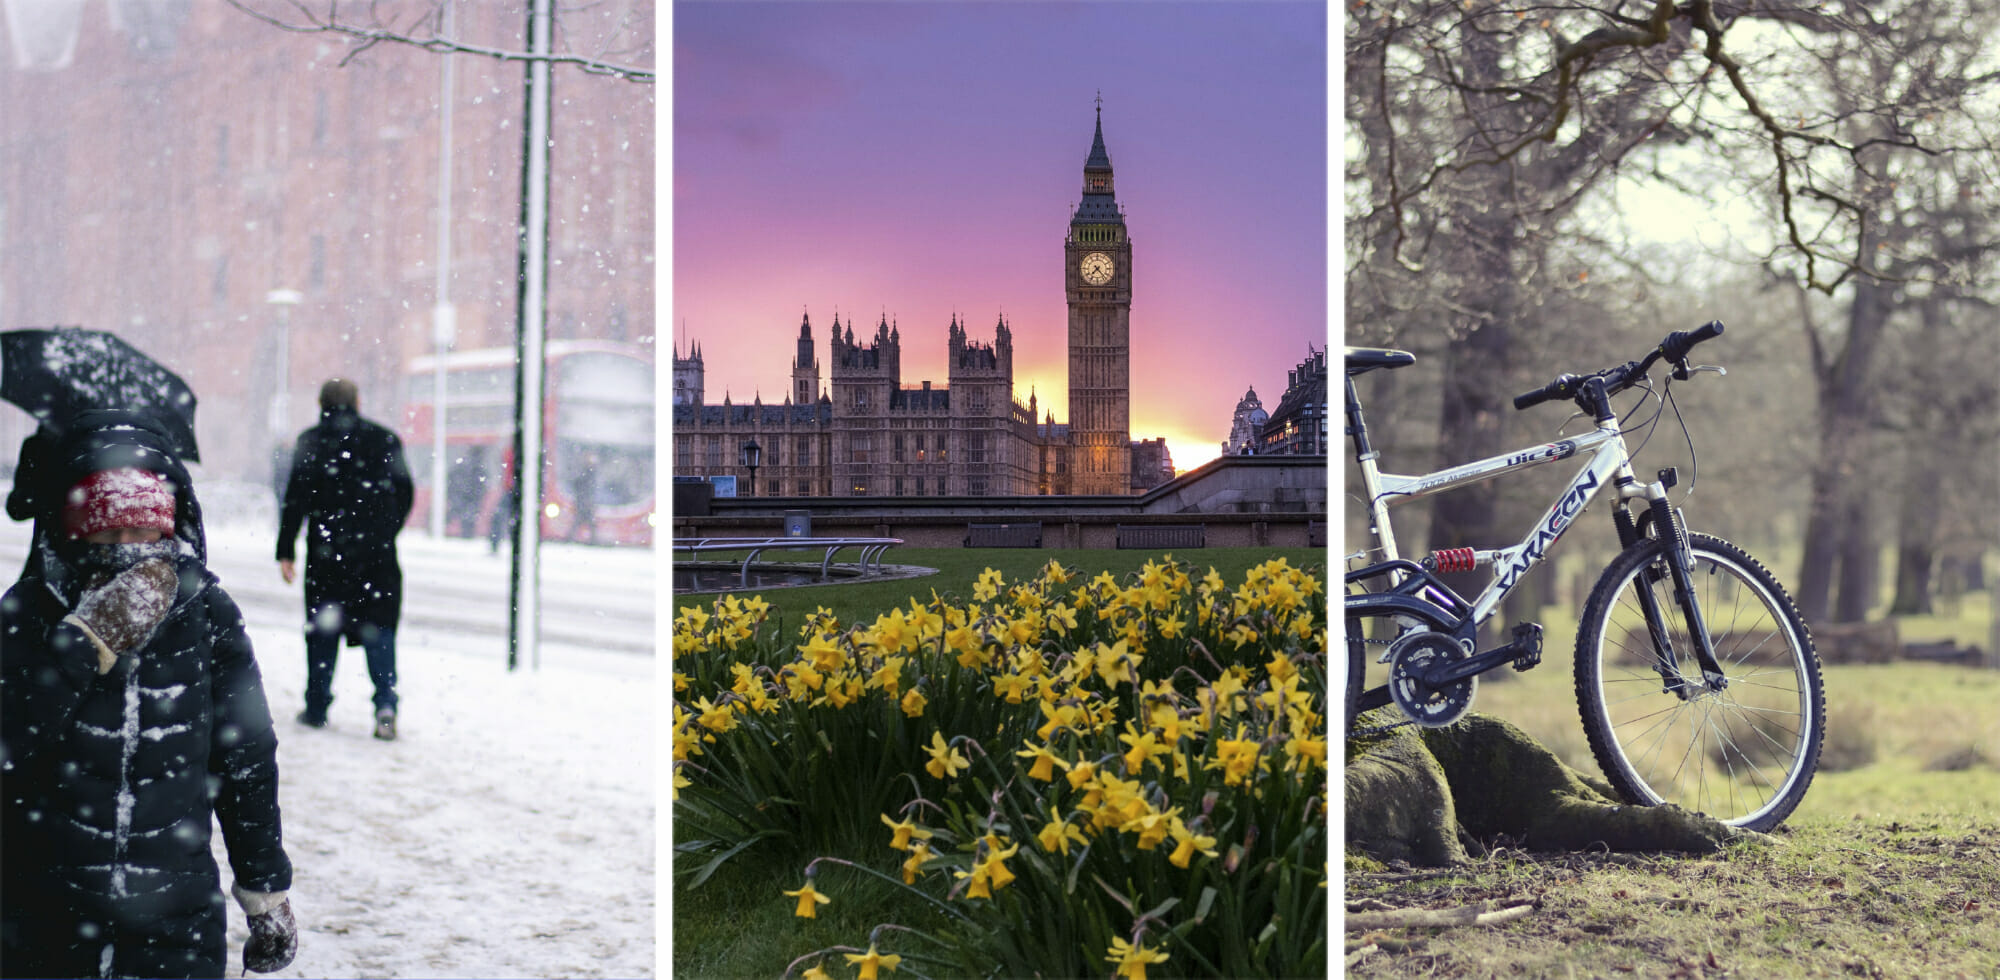 What's the Best Time to Study Abroad in London? via @girlsgonelondon